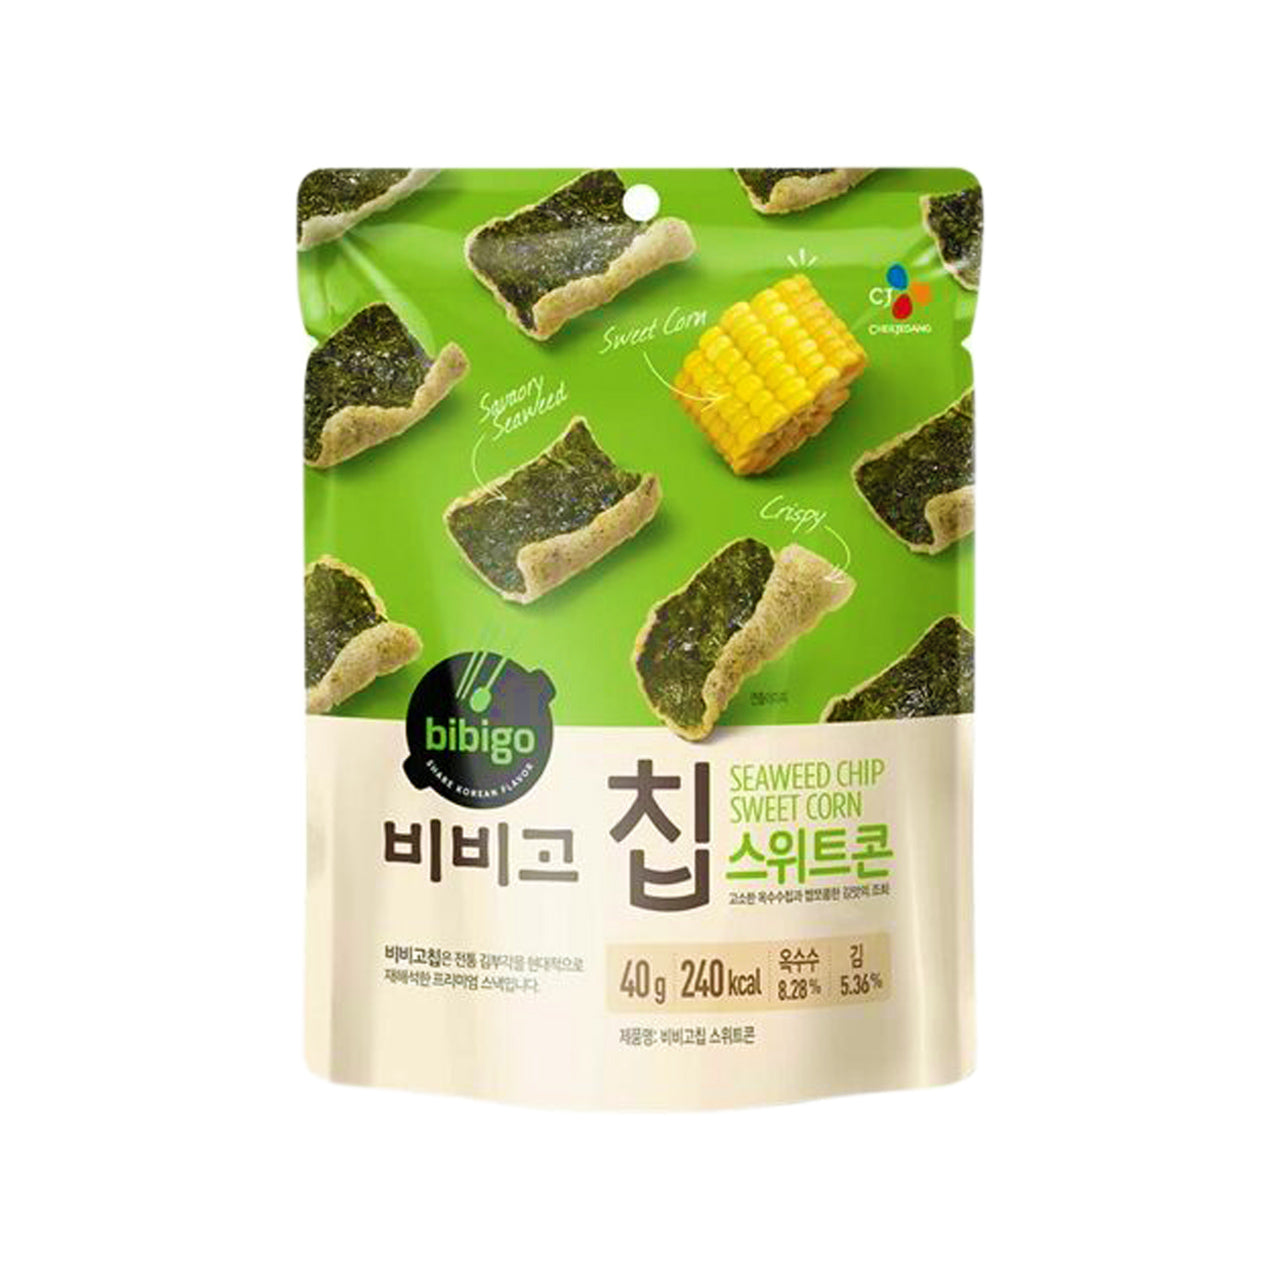 비비고 칩 스위트 콘 (Bibigo Sweetcorn Flavor chip) 40g